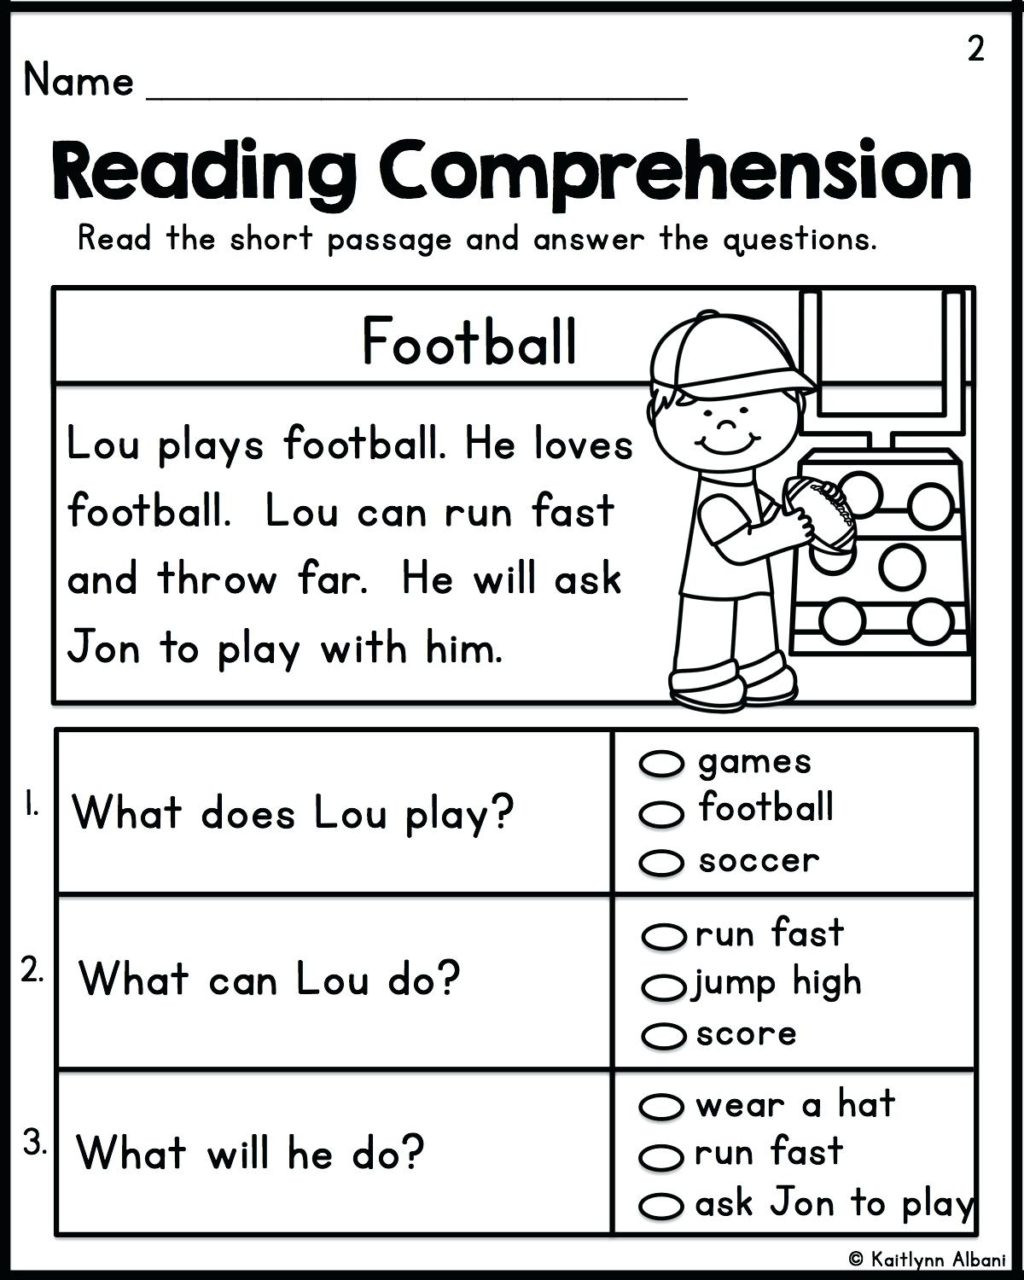 Preschool Reading Comprehension Worksheets Worksheet Worksheet Ideas Excelent Free Second Grade